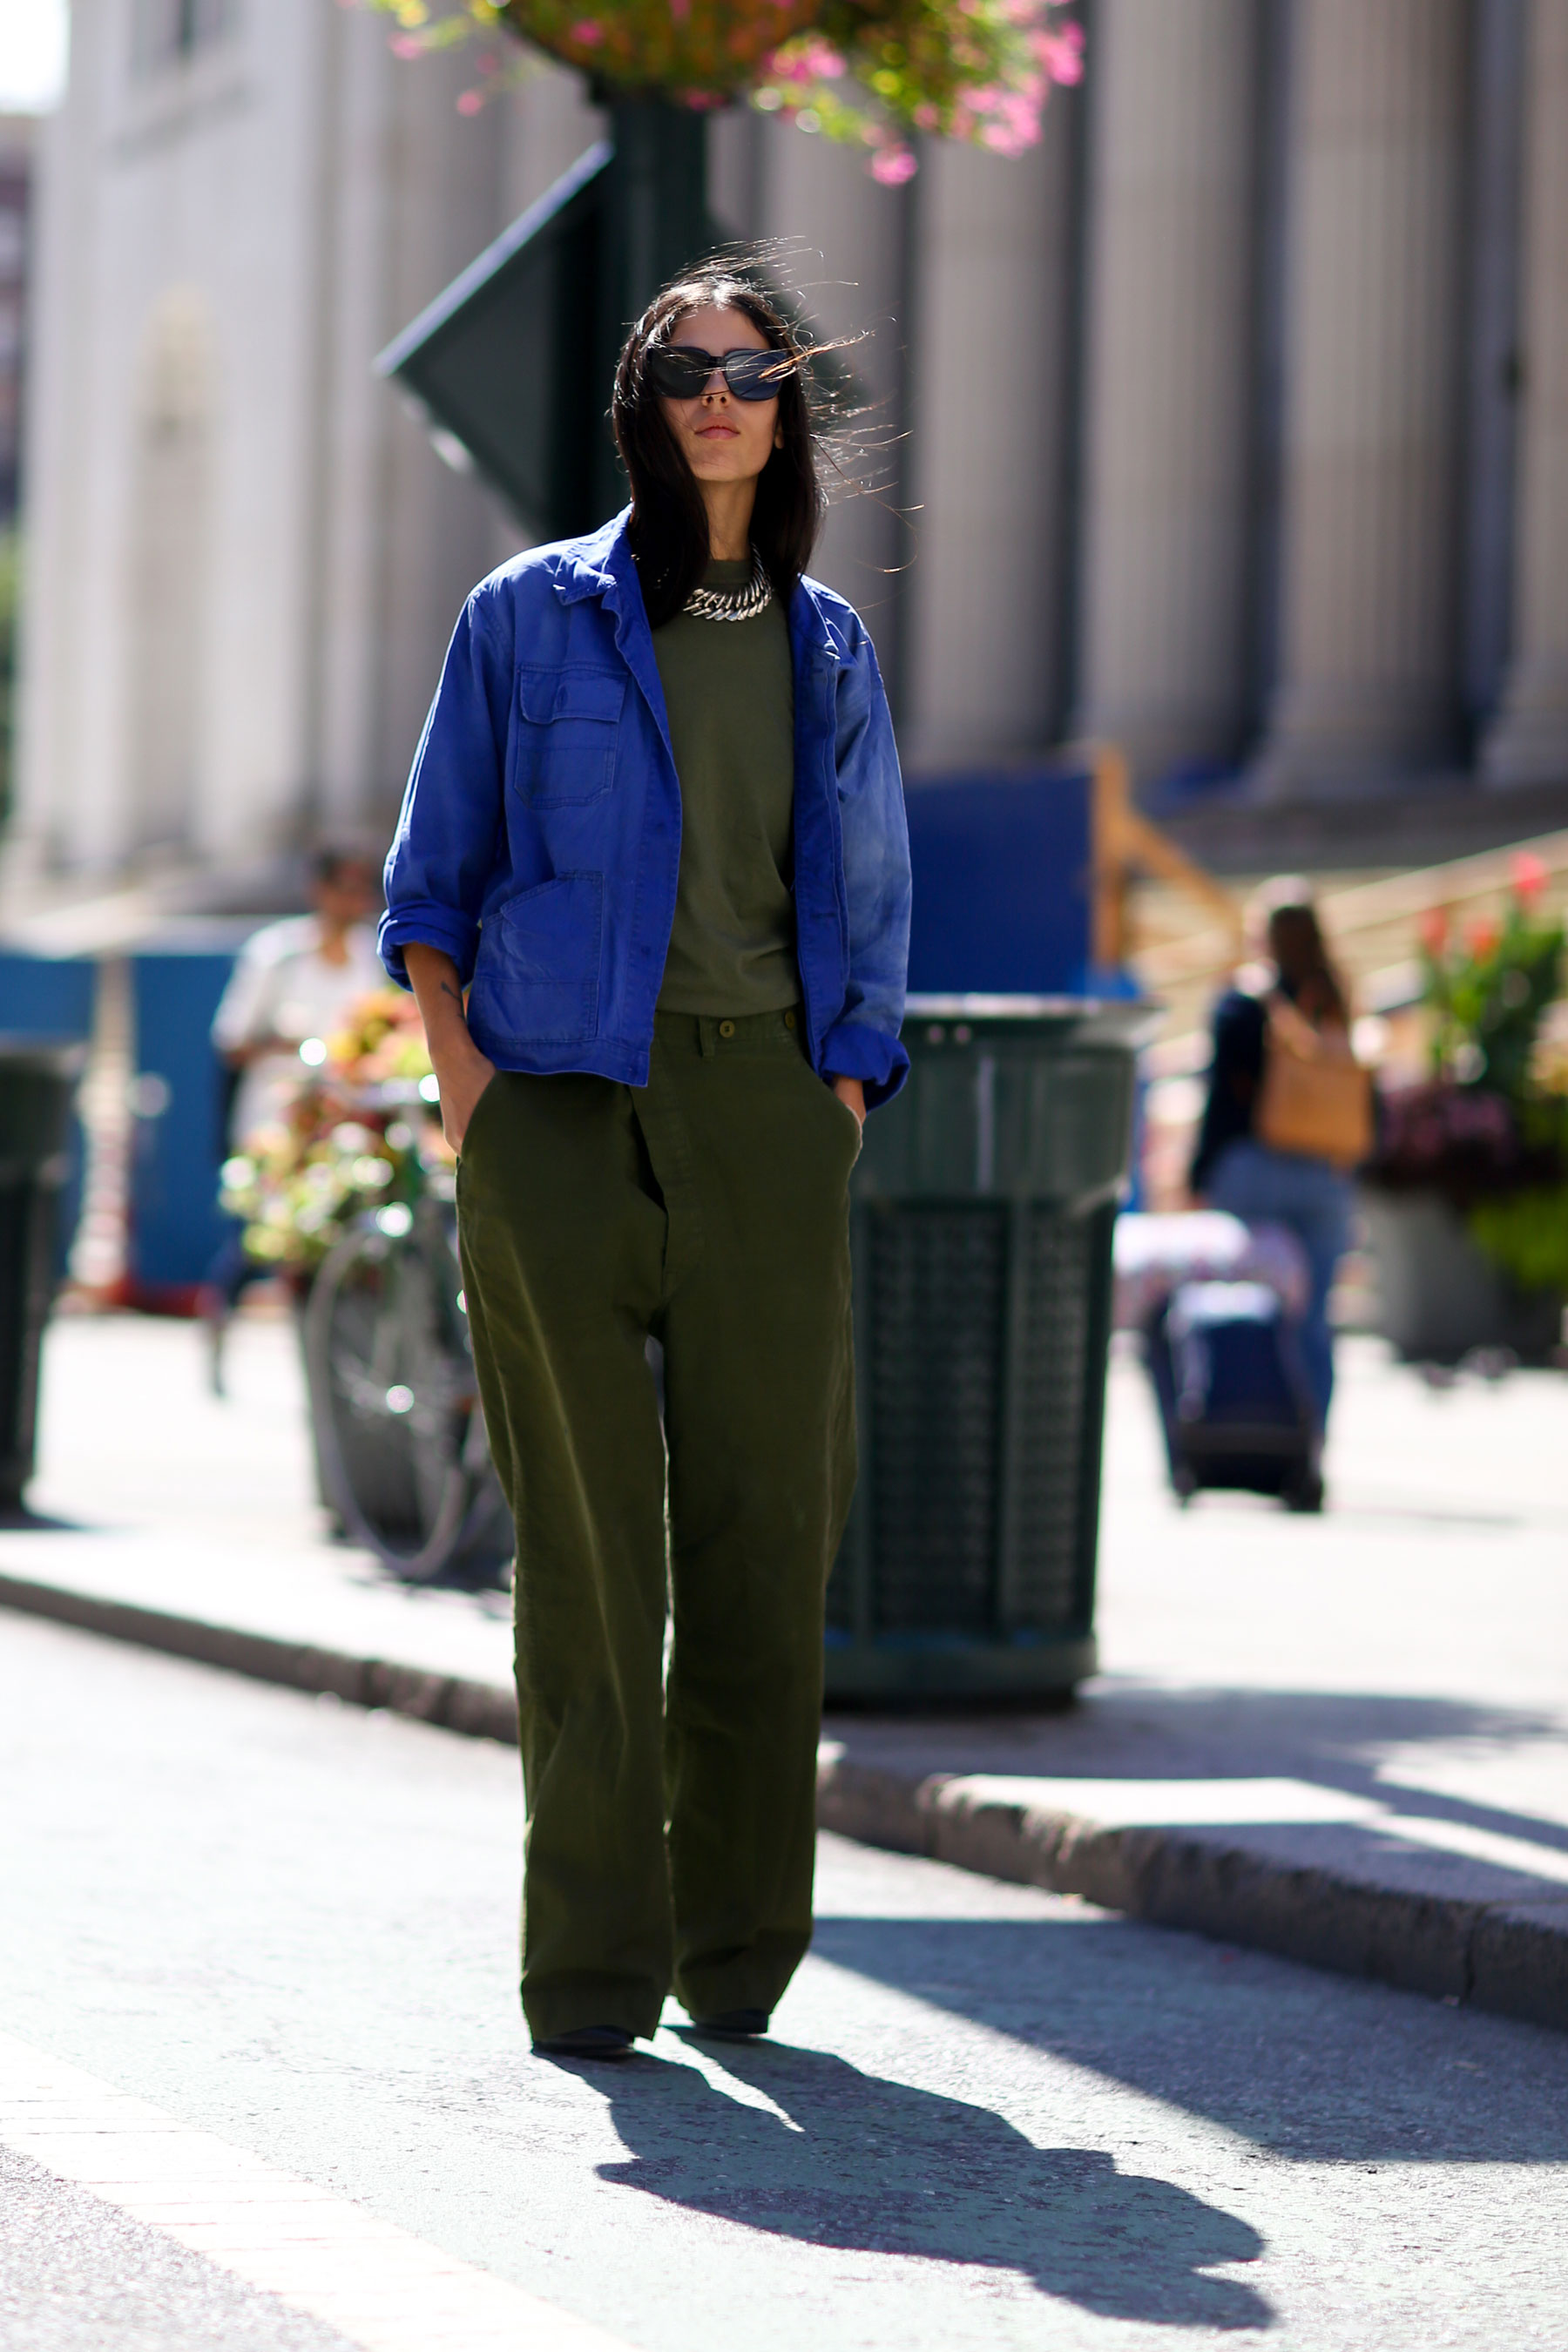 NEW-YORK-FASHION-WEEK-STREETS-STYLE-DAY5-spring-2016-fashion-show-the-impression-86